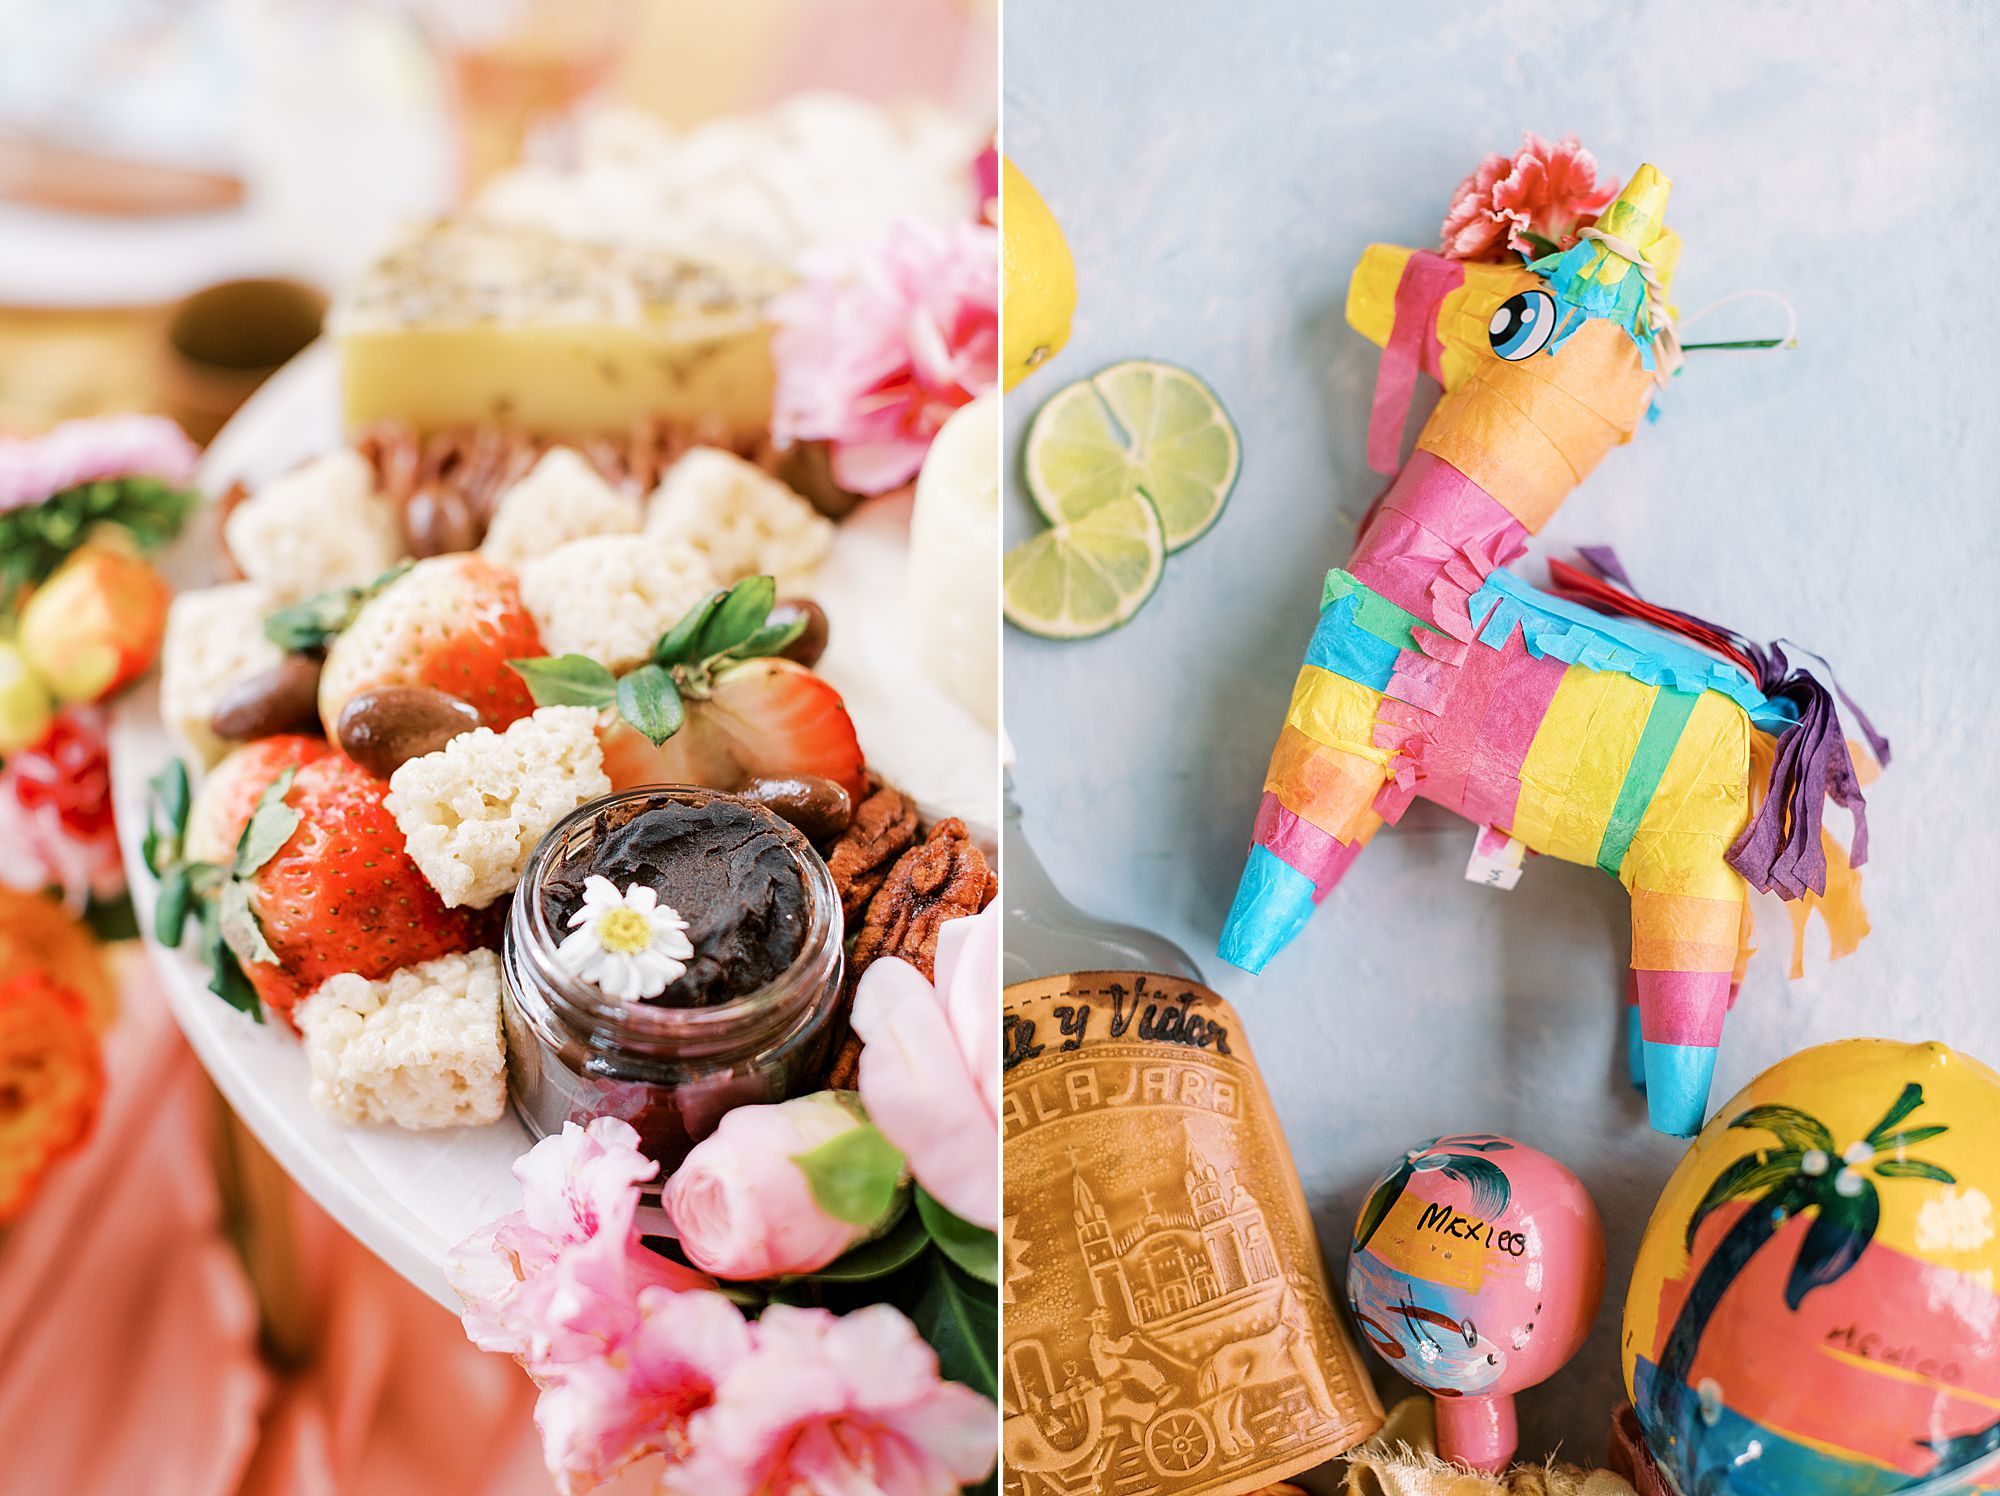 Cinco De Mayo Inspiration for Your FIesta - Party Crush Studio and Ashley Baumgartner_0064.jpg